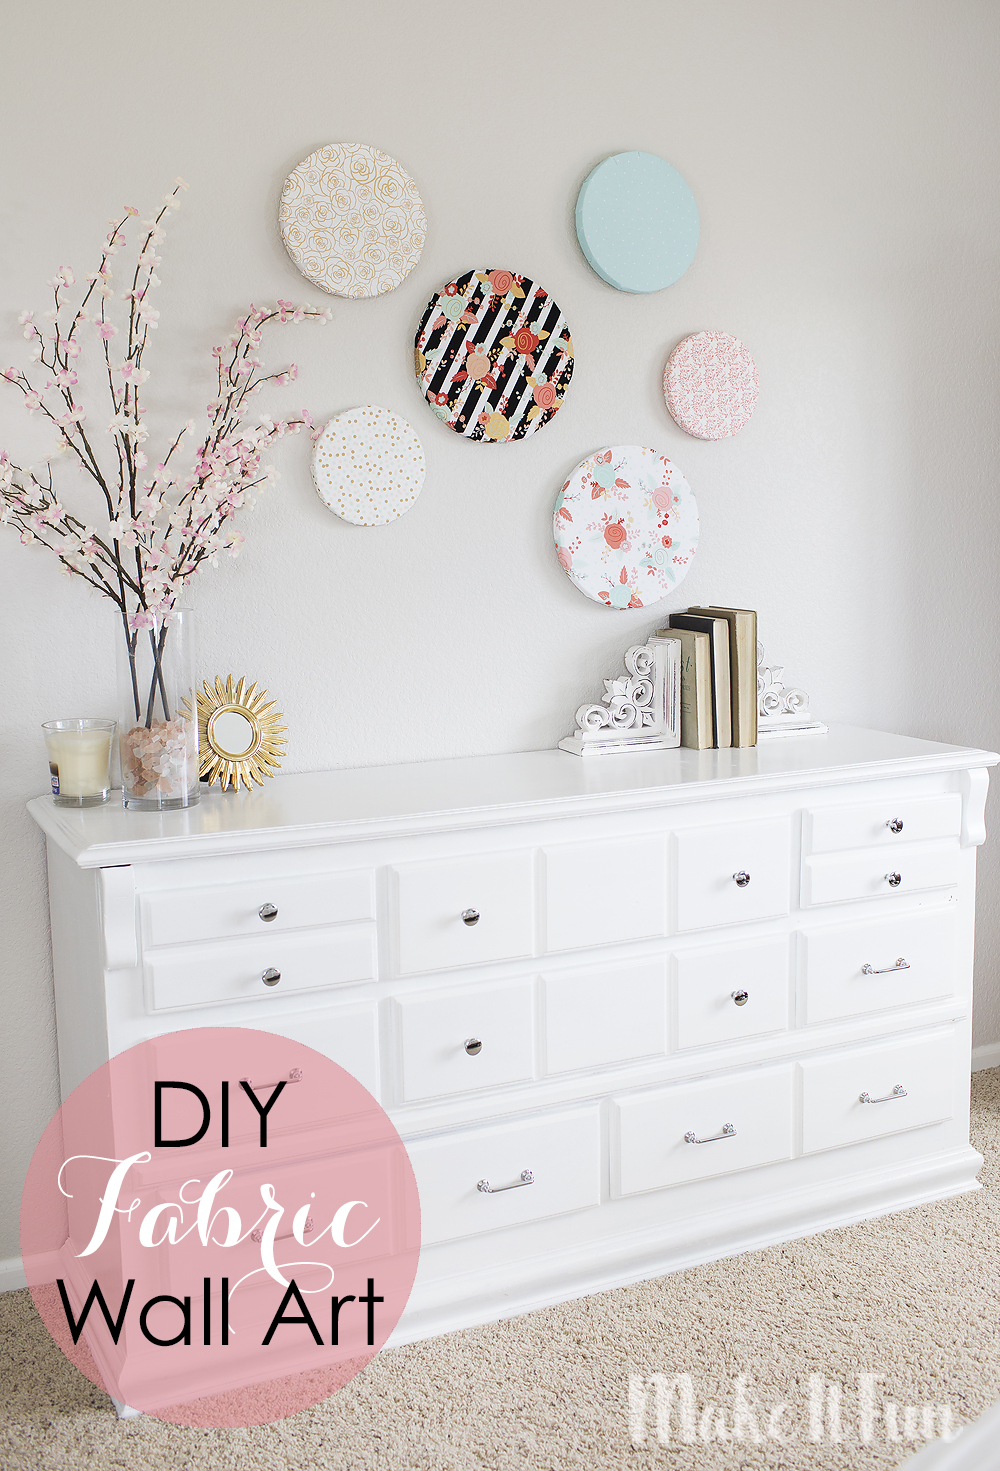 Diy Wall Art Fabric : Make it fun diy fabric wall art